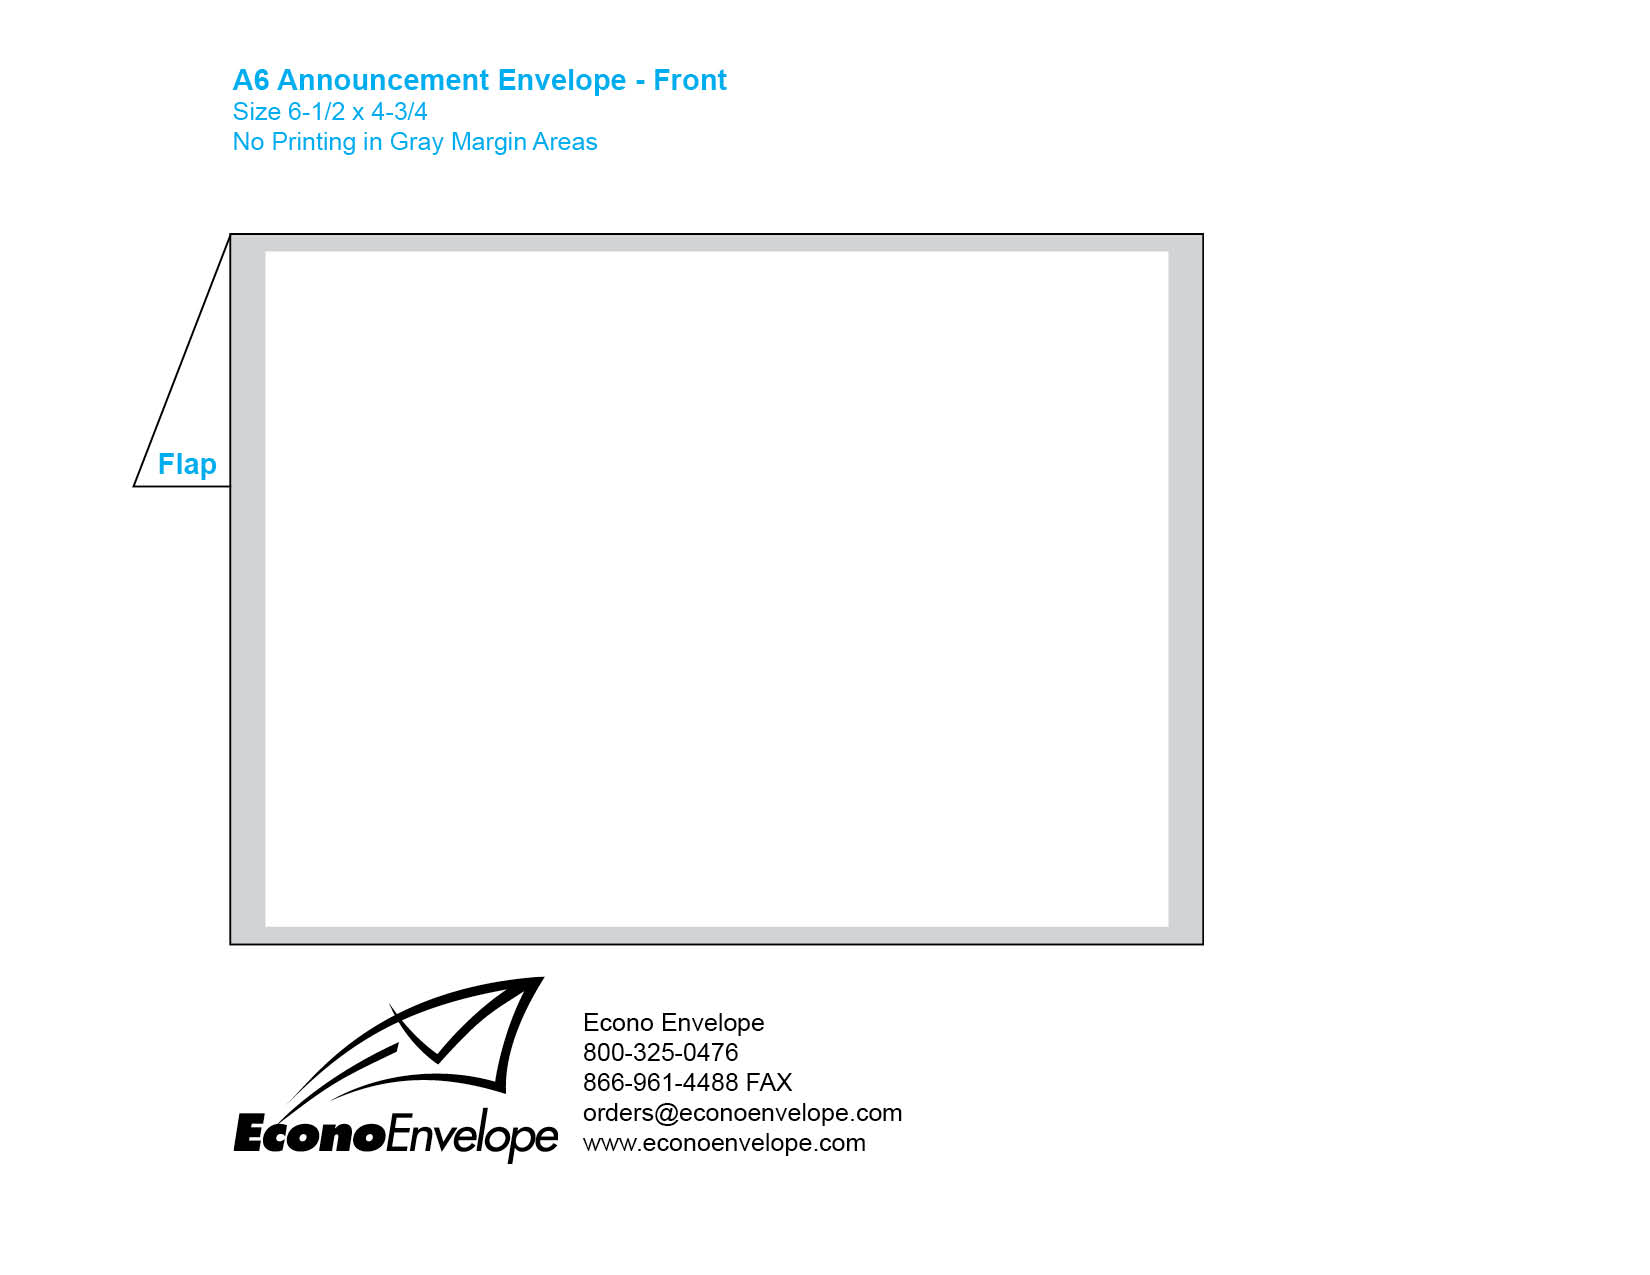 Envelope Template Downloads - A6 envelope printing template